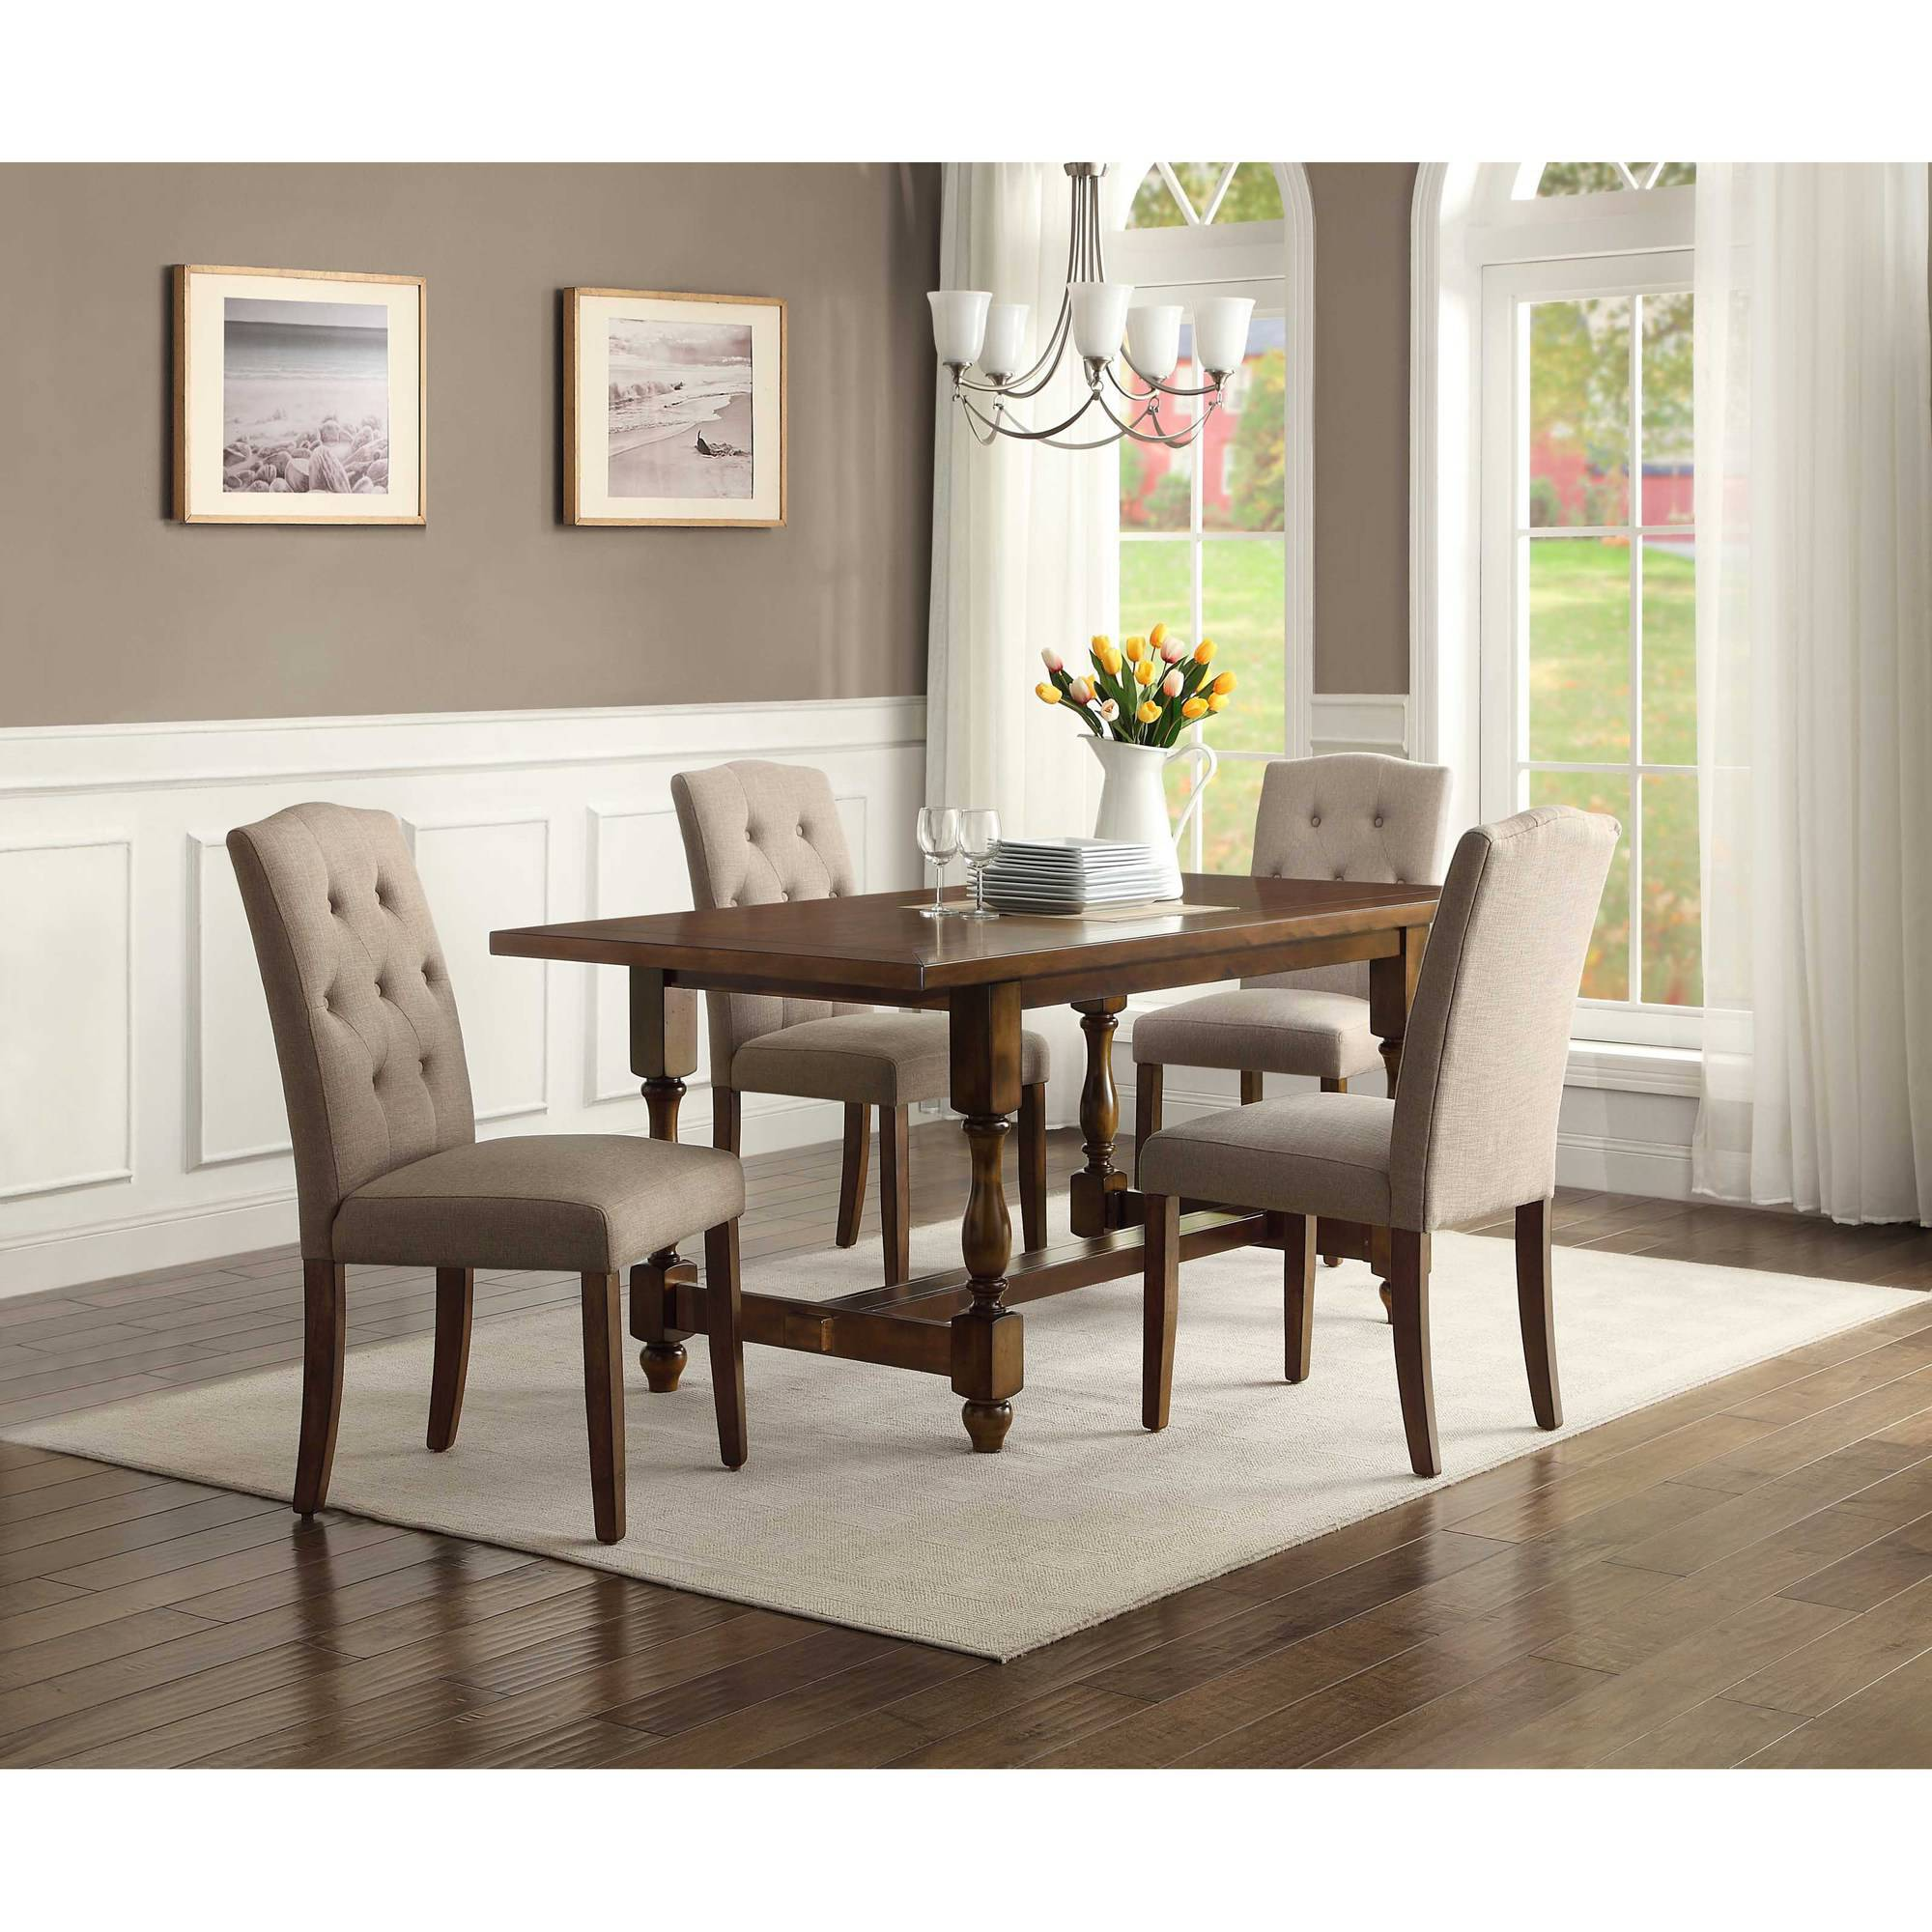 Better Homes and Gardens Providence 5Piece Dining Set Brown